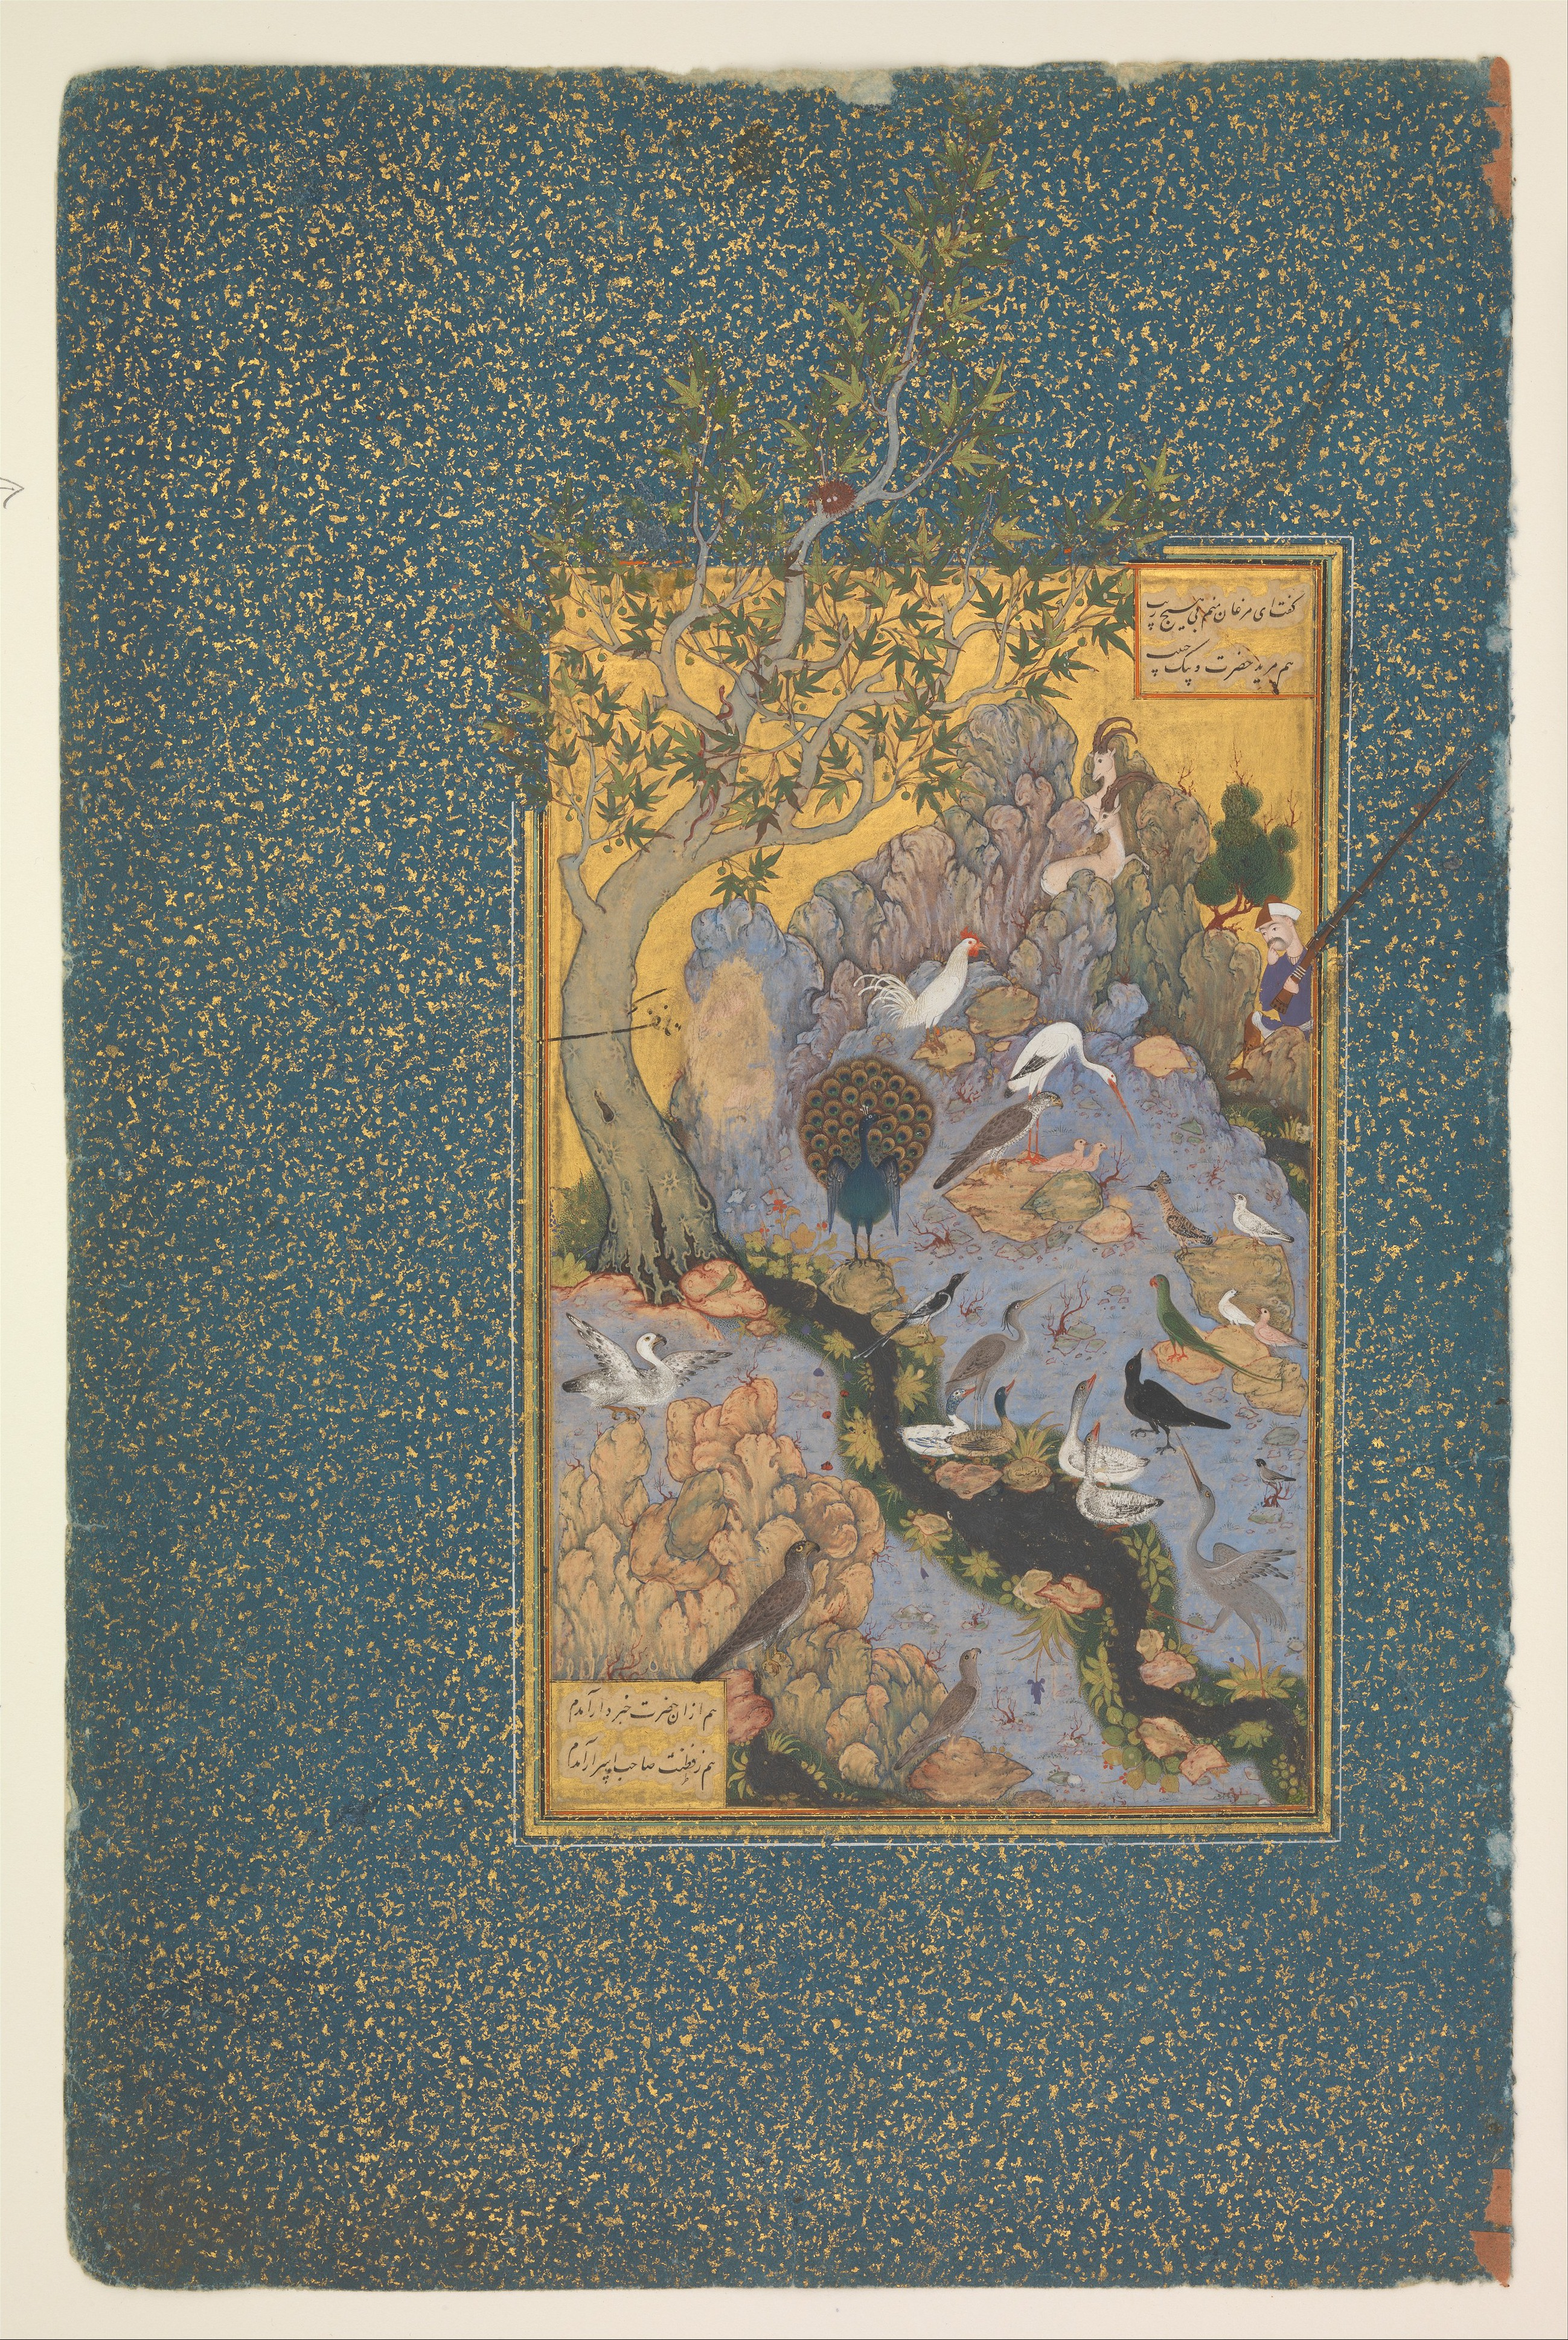 Conference of the Birds by Attar